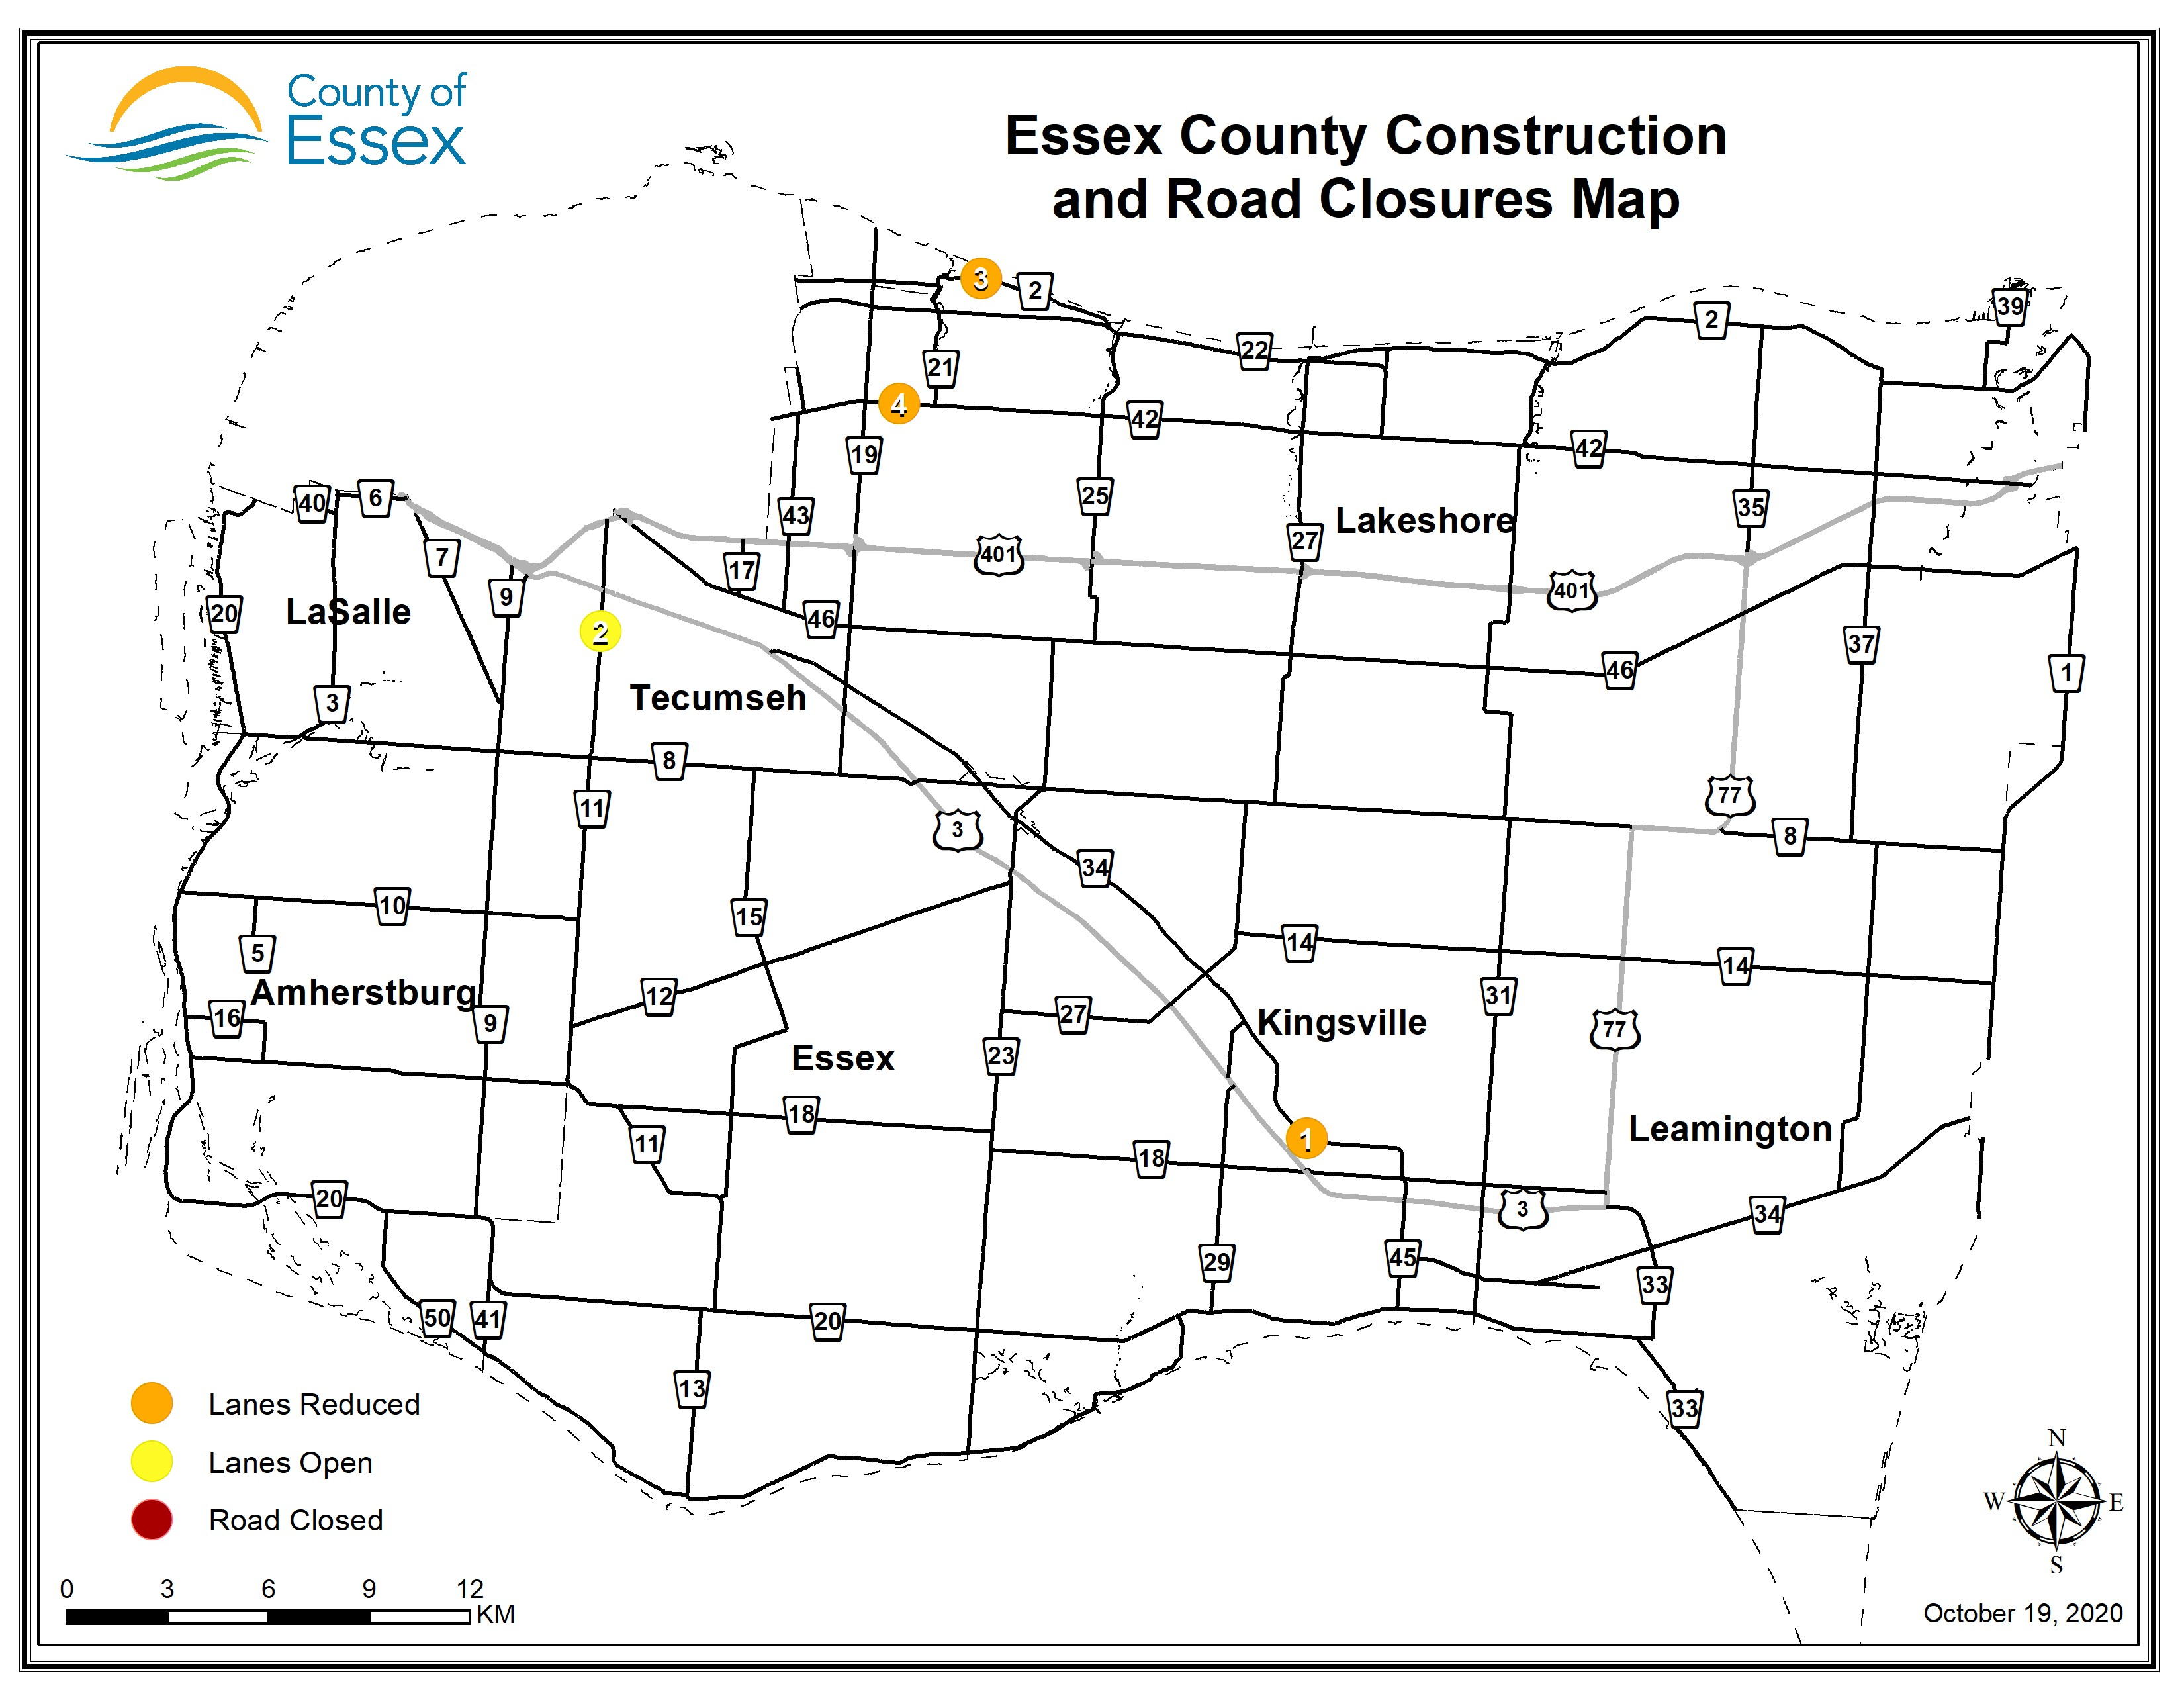 A map of Essex County showing road closures and lane restrictions for Oct. 19, 2020.